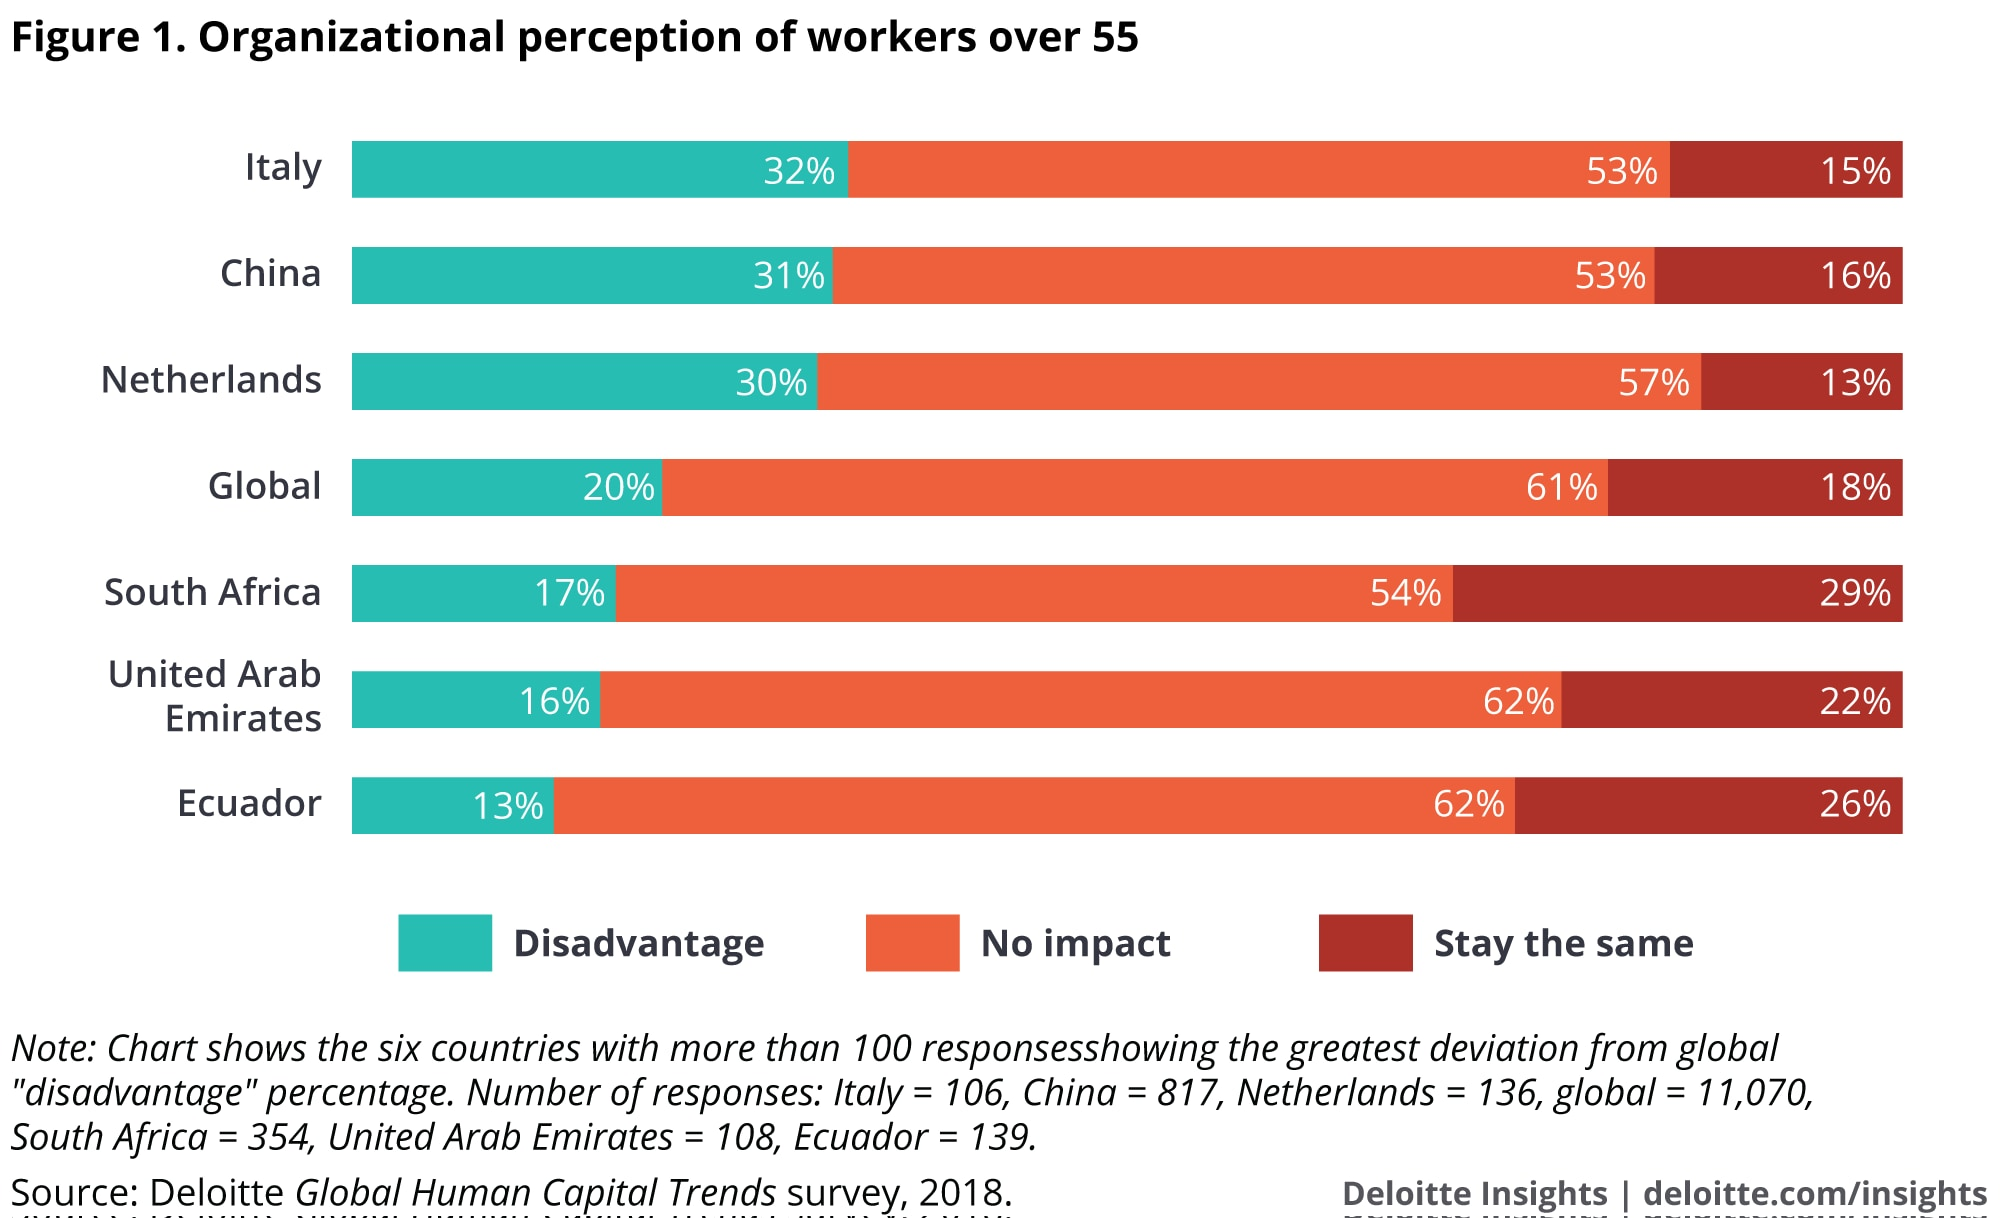 Organizational perception of workers over 55